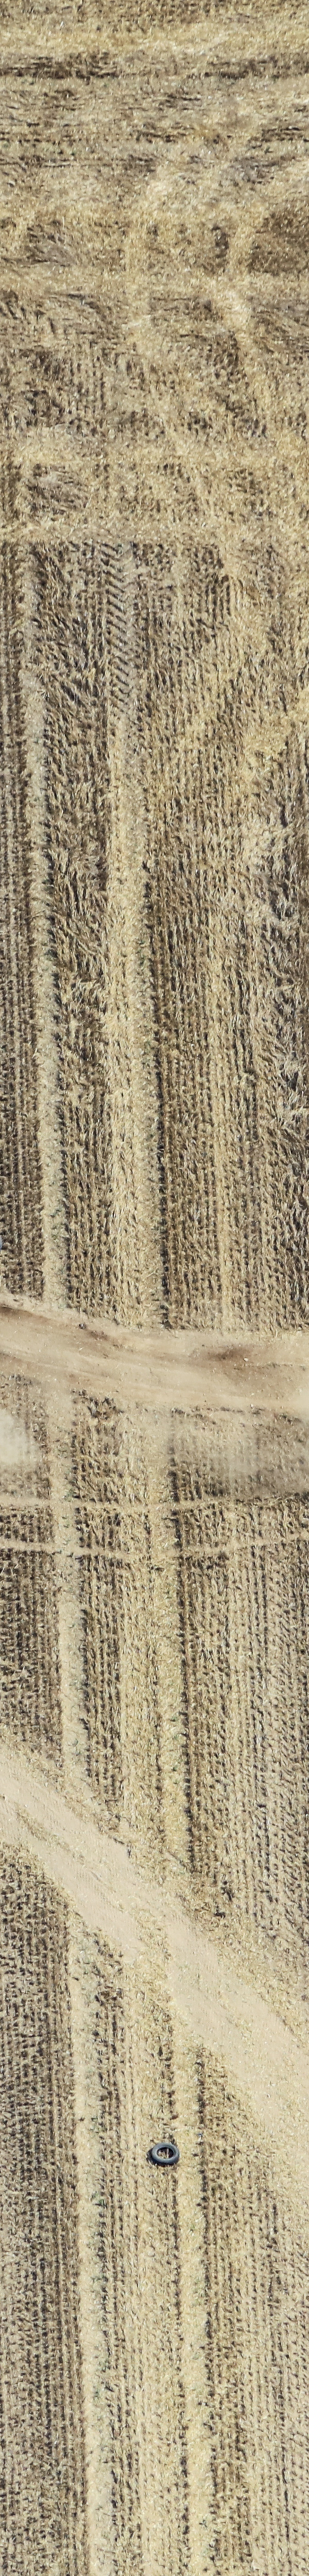 Aerial view of a car race on the stubble field - Klaus Leidorf Aerial Photography